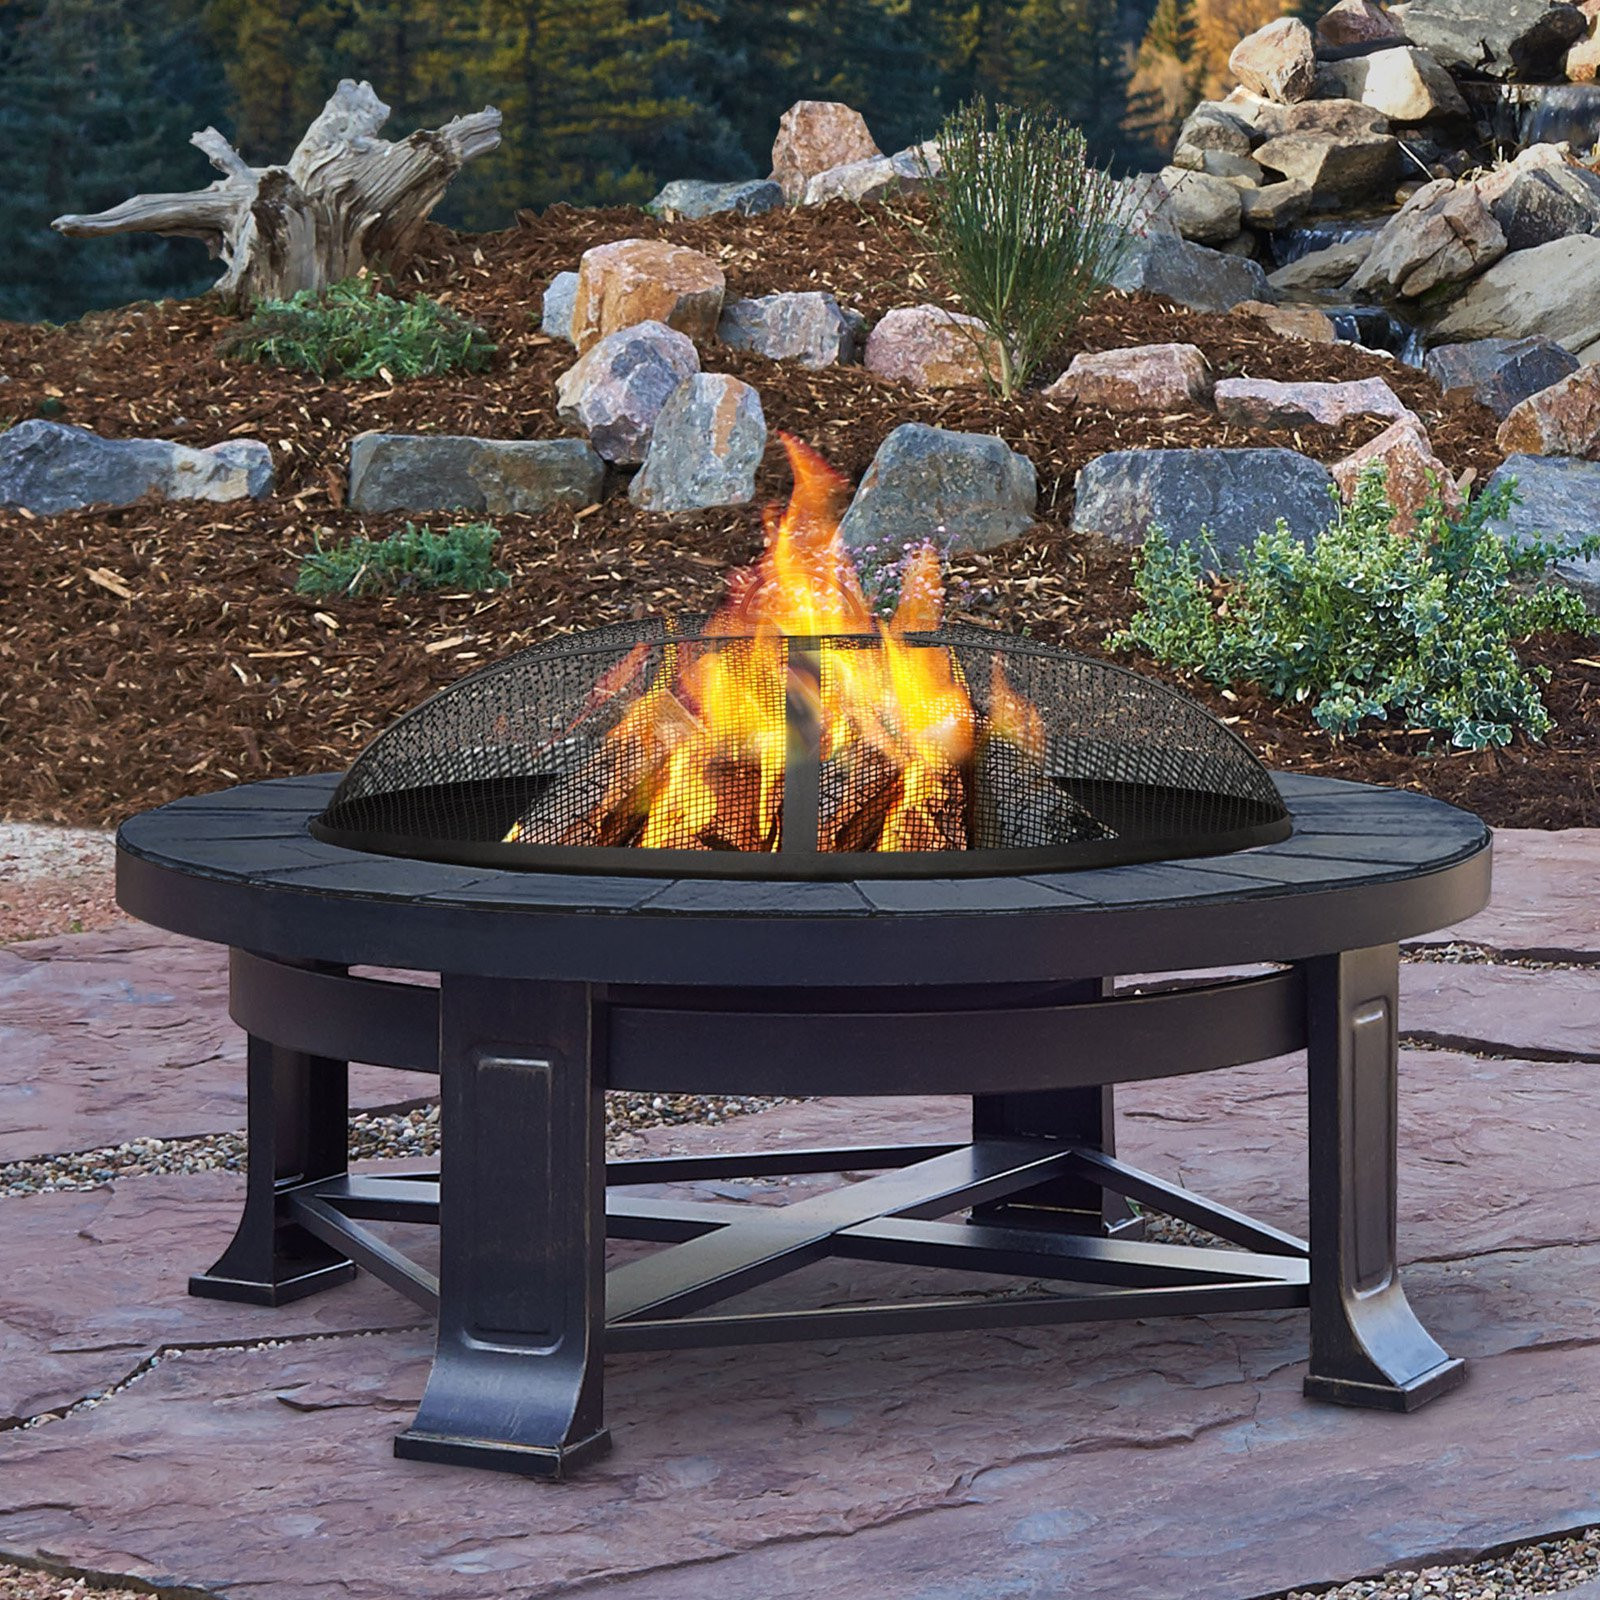 Fireplace Fire Pit  Real Flame Edwards Wood Burning Fire Pit Fire Pits at